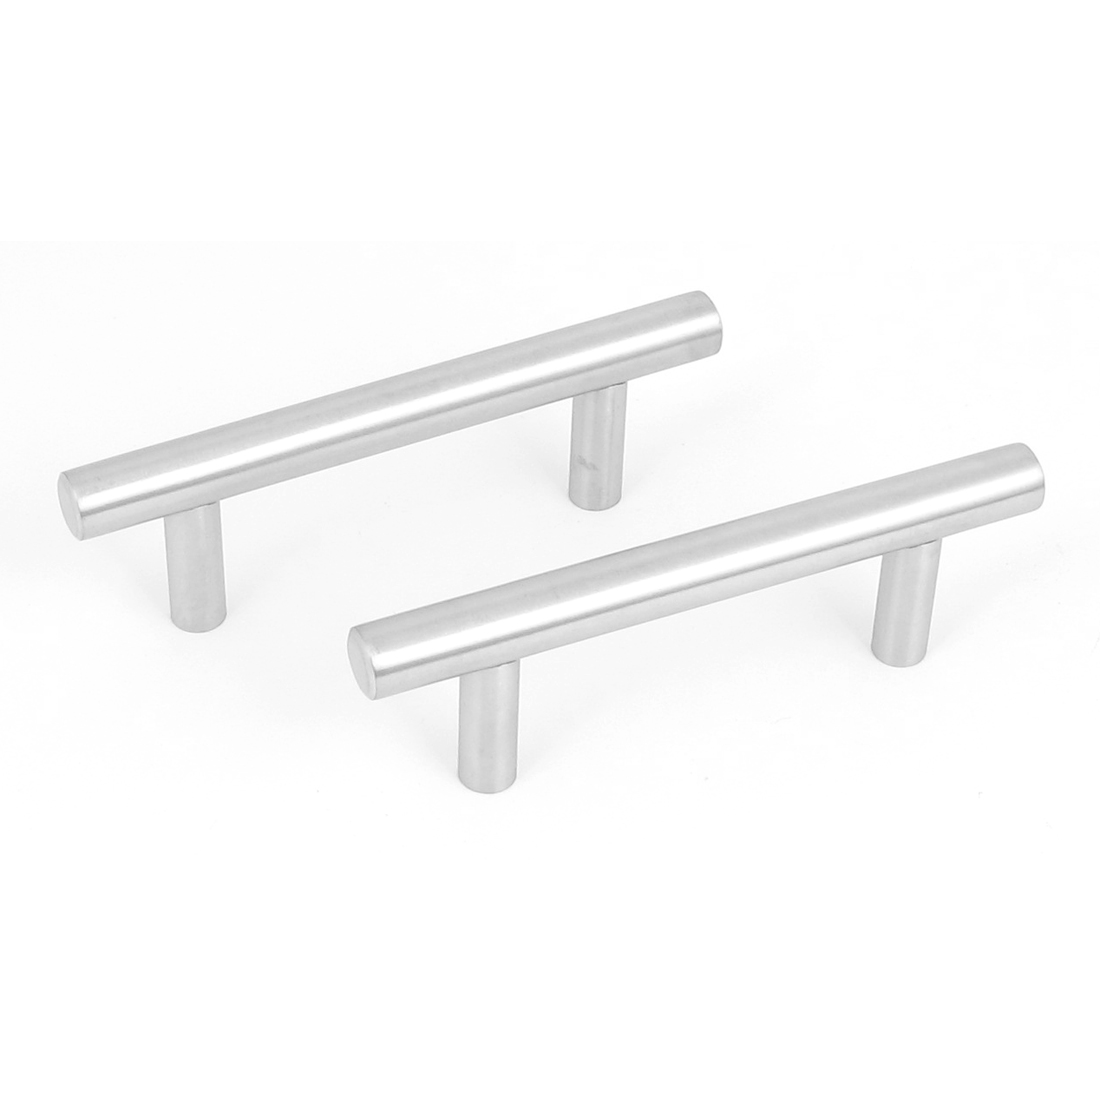 """2pcs Stainless Steel Kitchen Cupboard Cabinet Drawer T Bar Pull Handle Knob 4"""""""